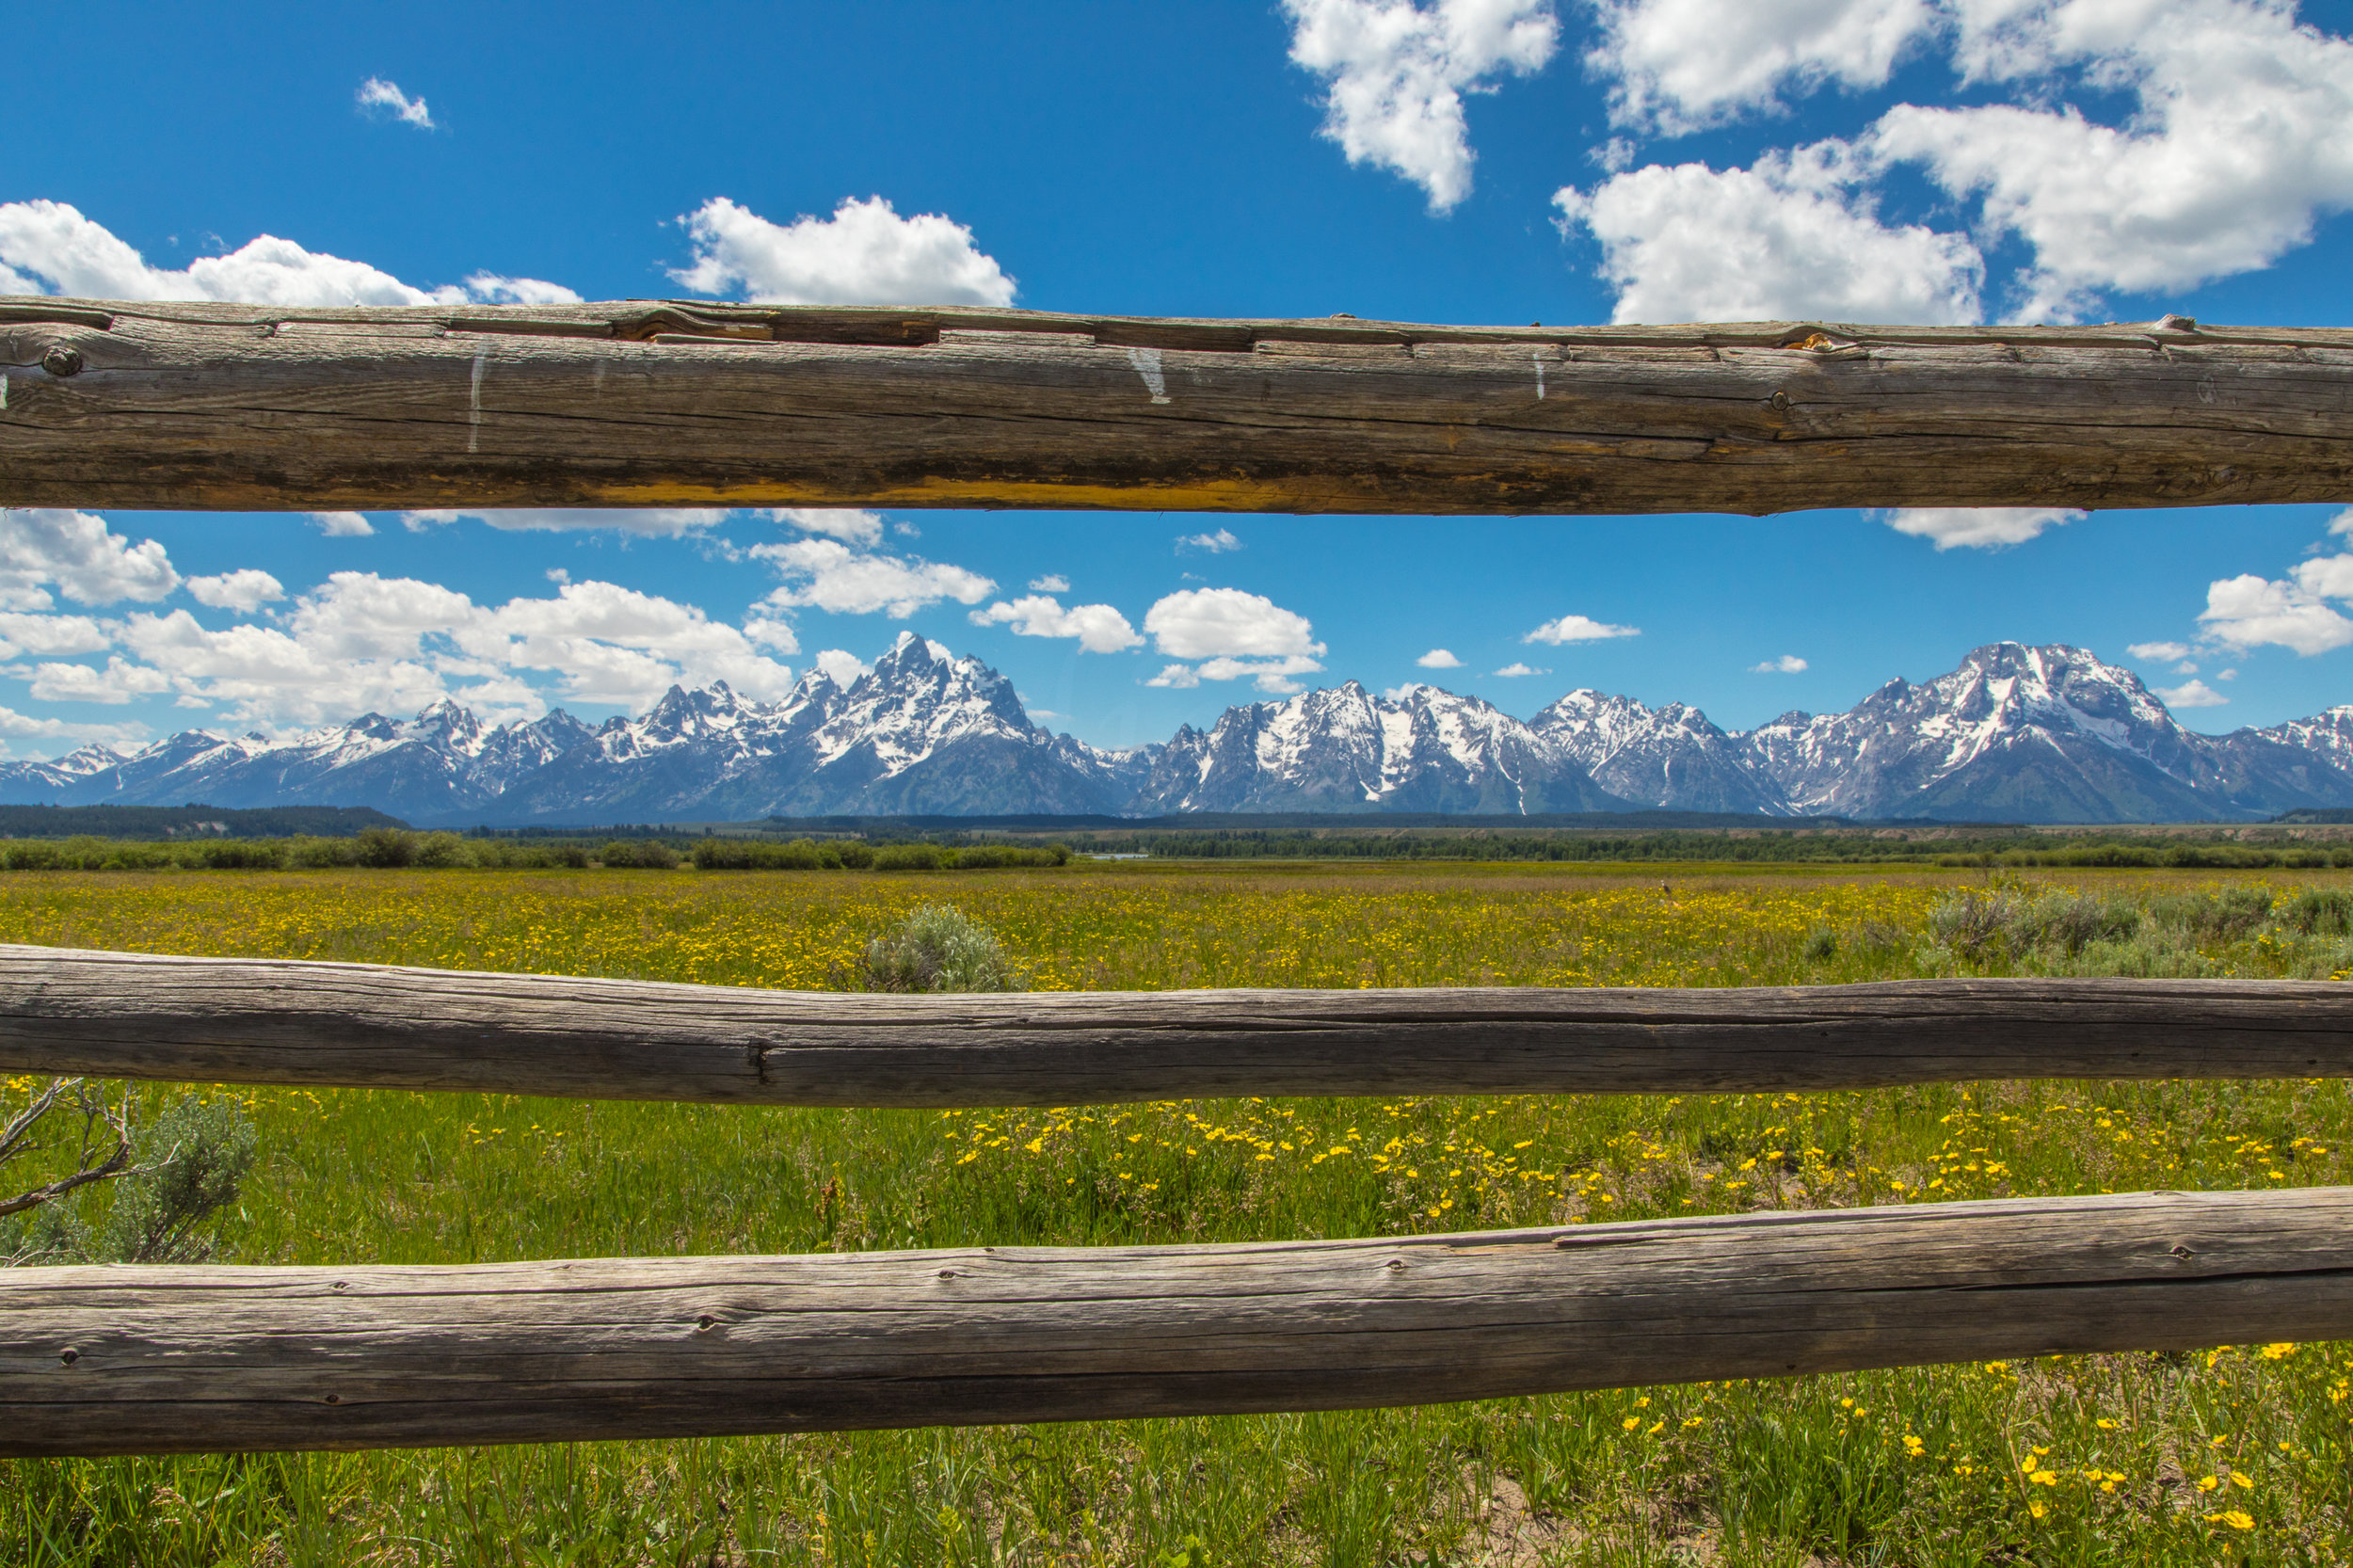 Cunningham Cabin, Grand Teton National Park, Image # 8373